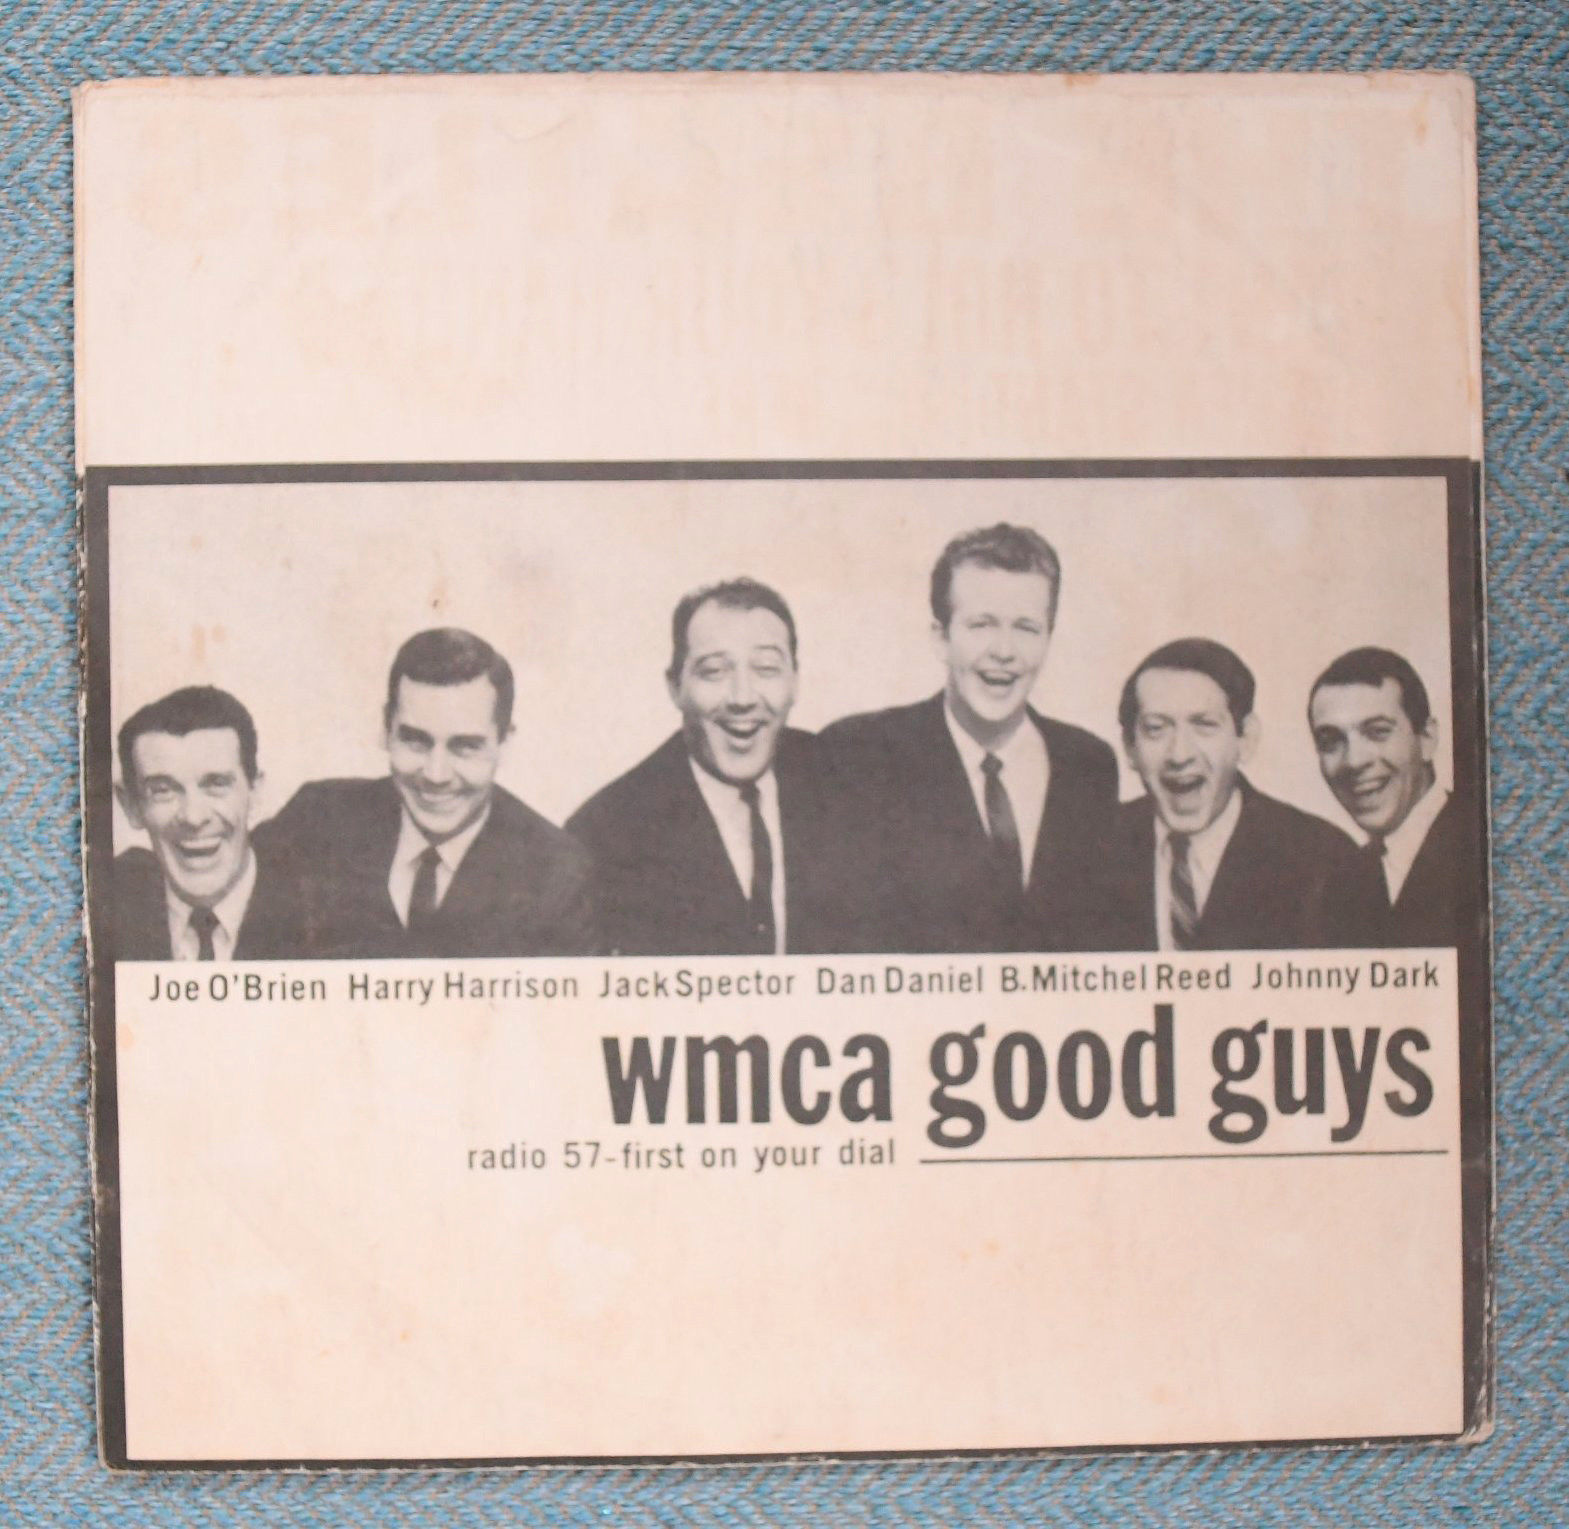 THE BEATLES, I want to hold, WMCA GOOD GUYS, Capitol-5112  cover only